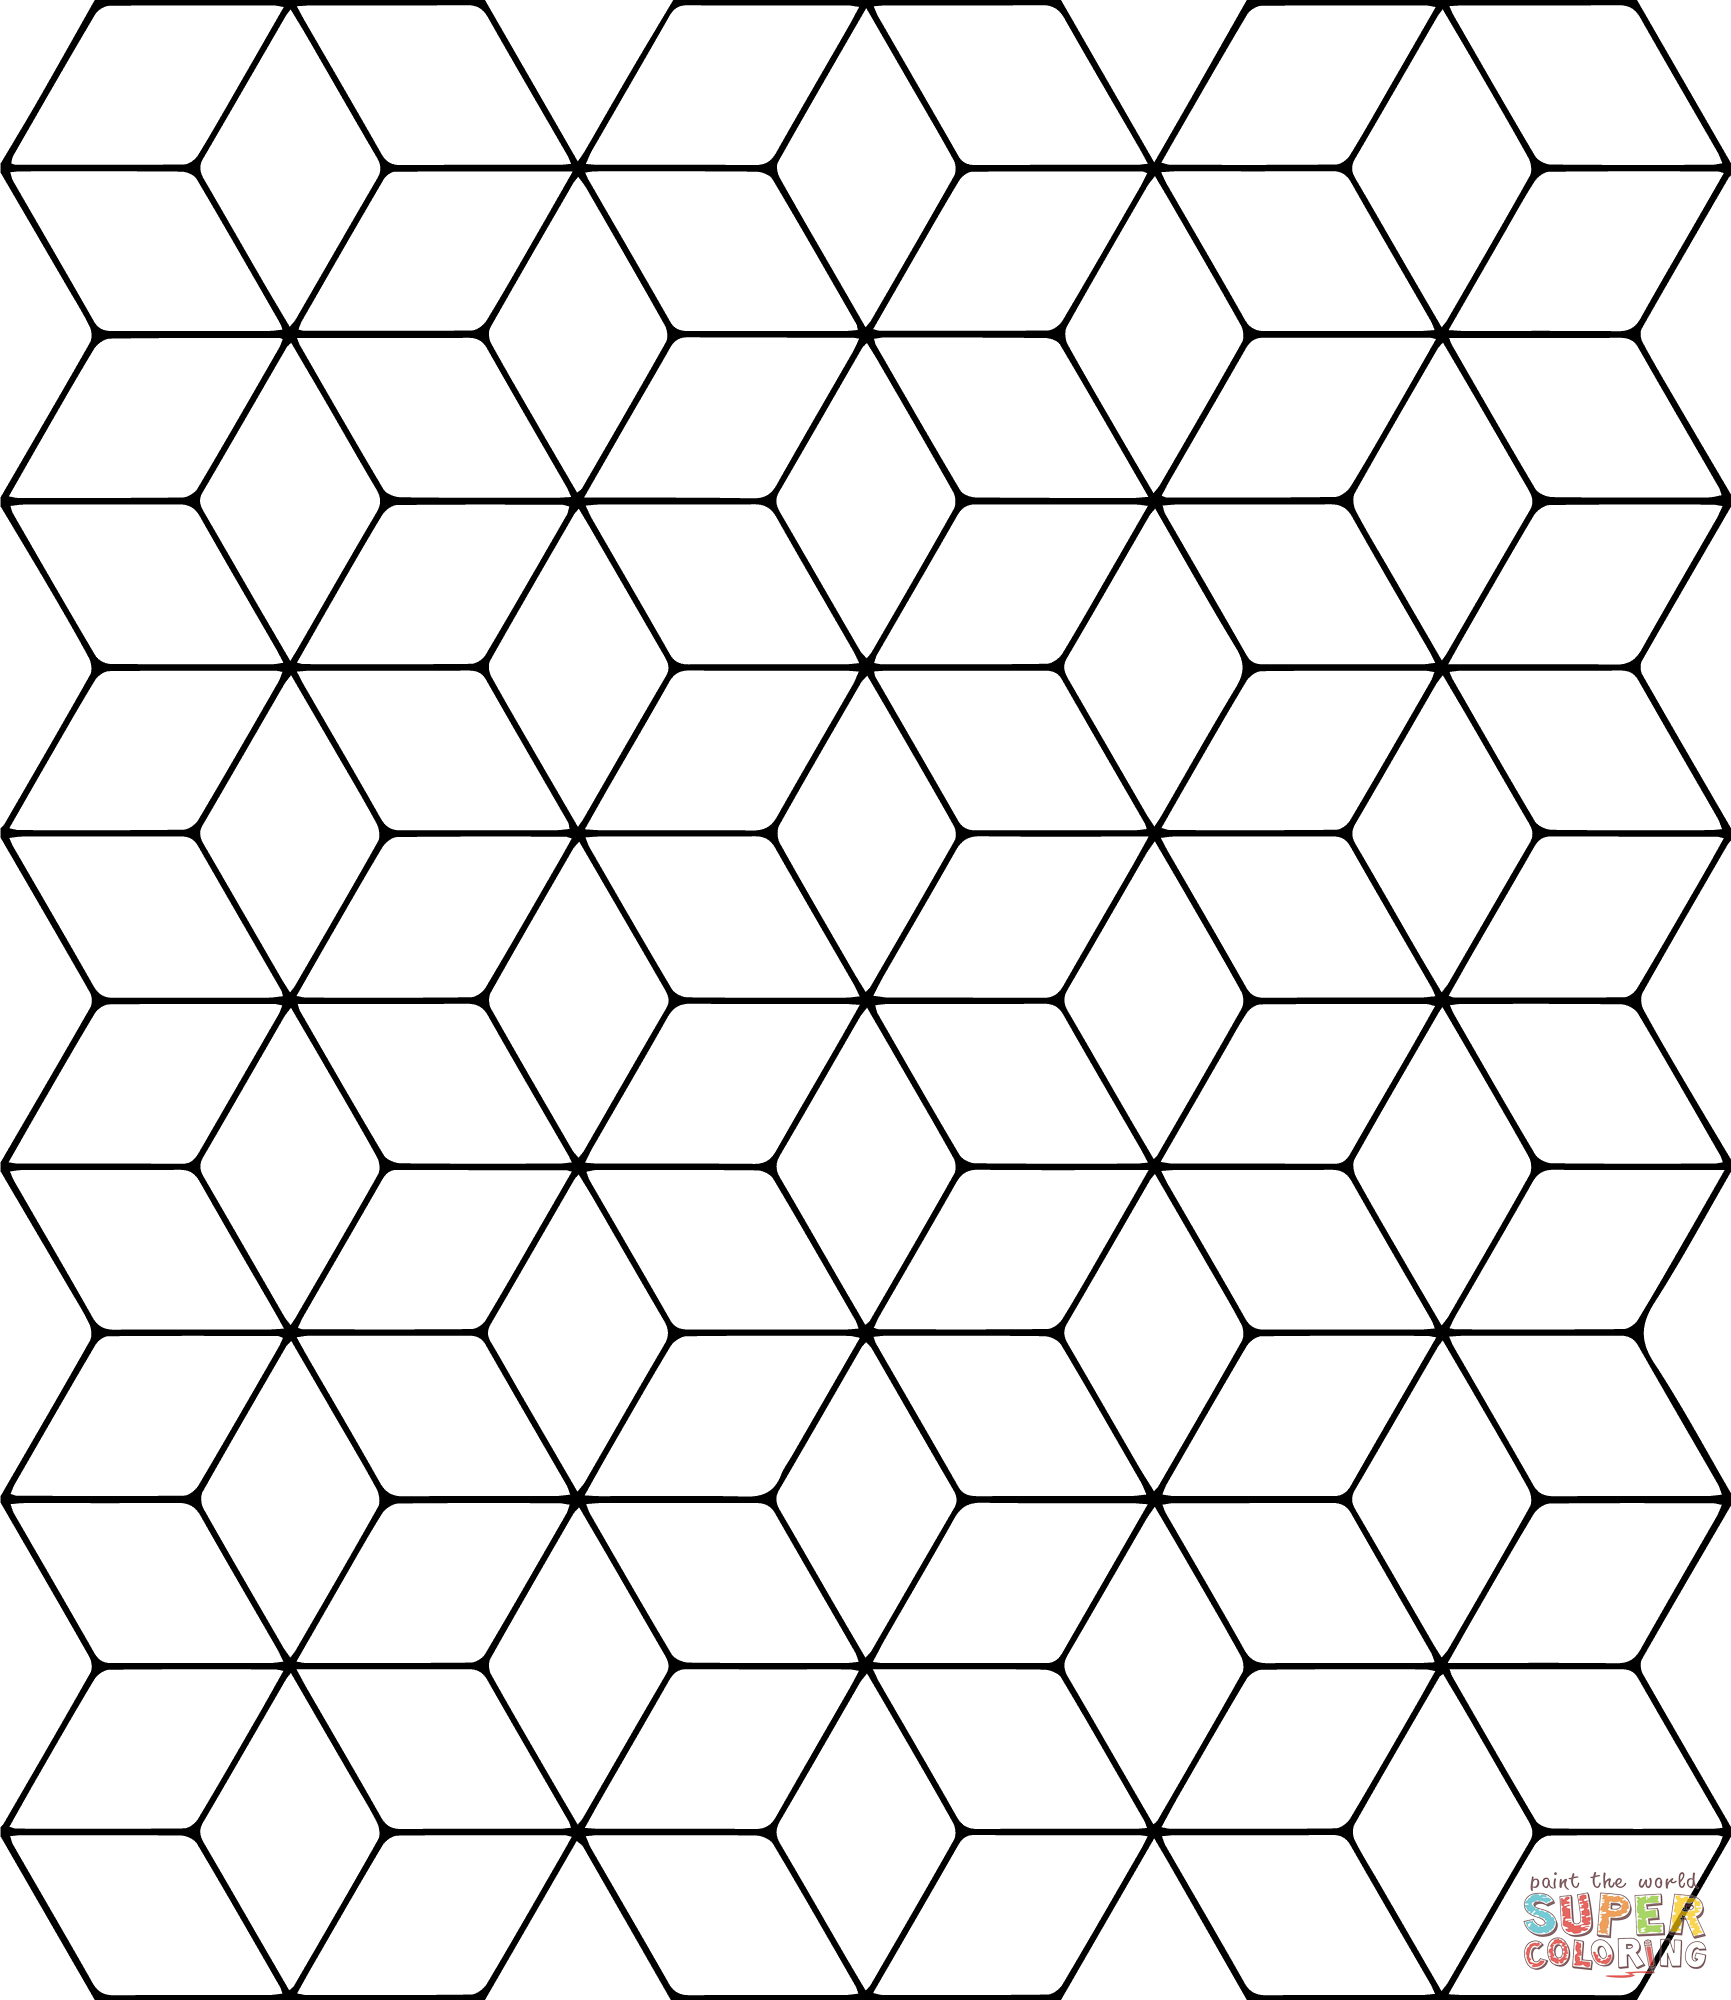 tessellation coloring tessellation with rhombus coloring page free printable tessellation coloring